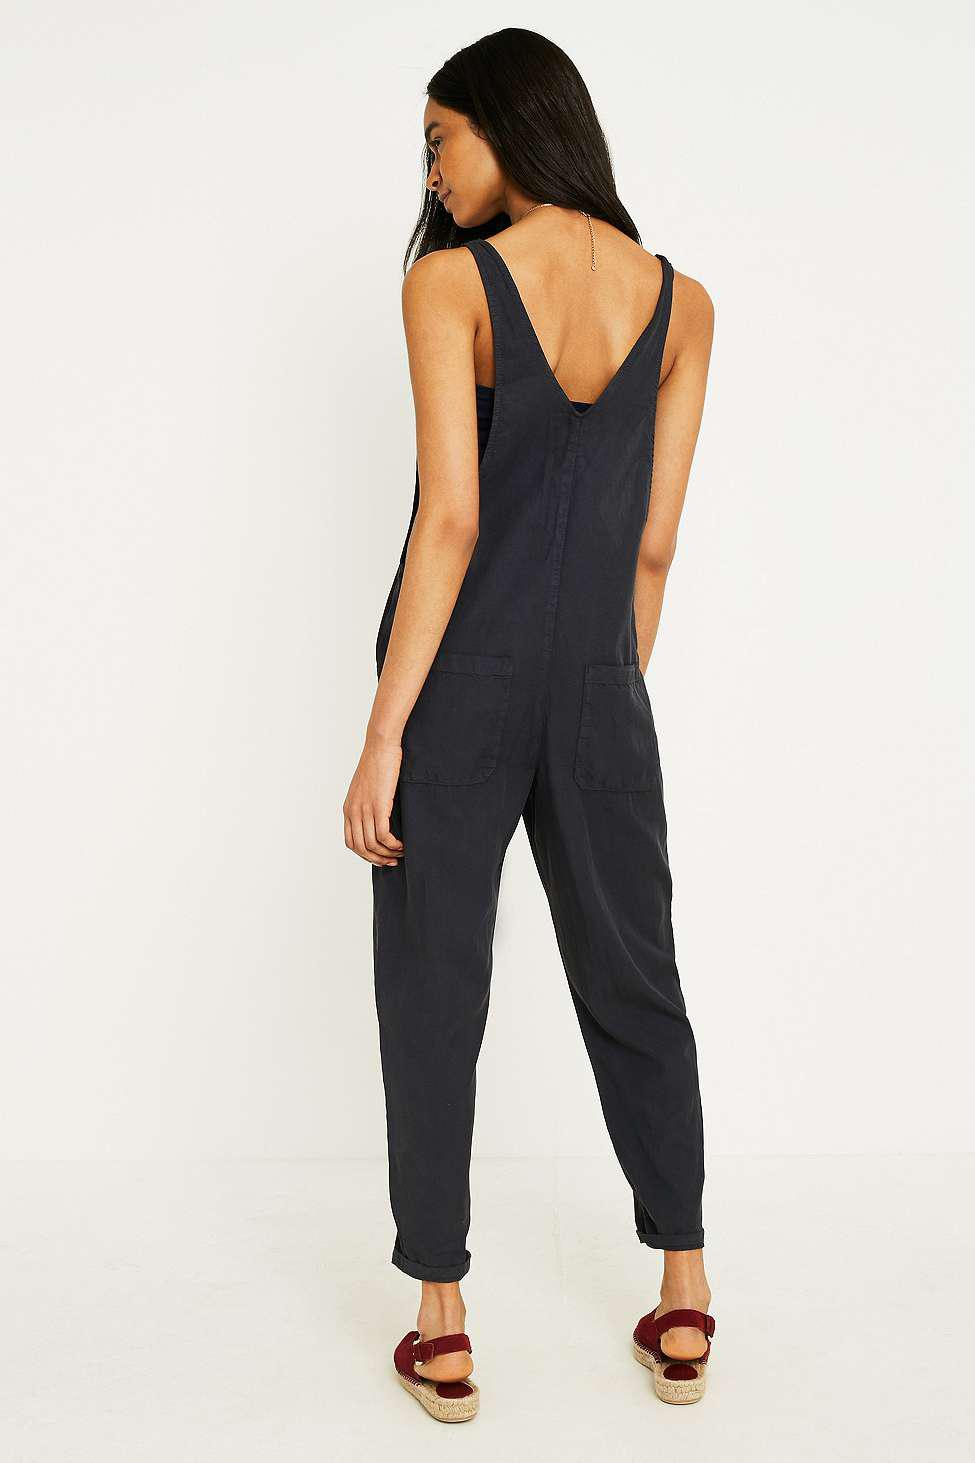 fb38767e87c7 Urban Outfitters Uo Shauny Jumpsuit in Gray - Lyst